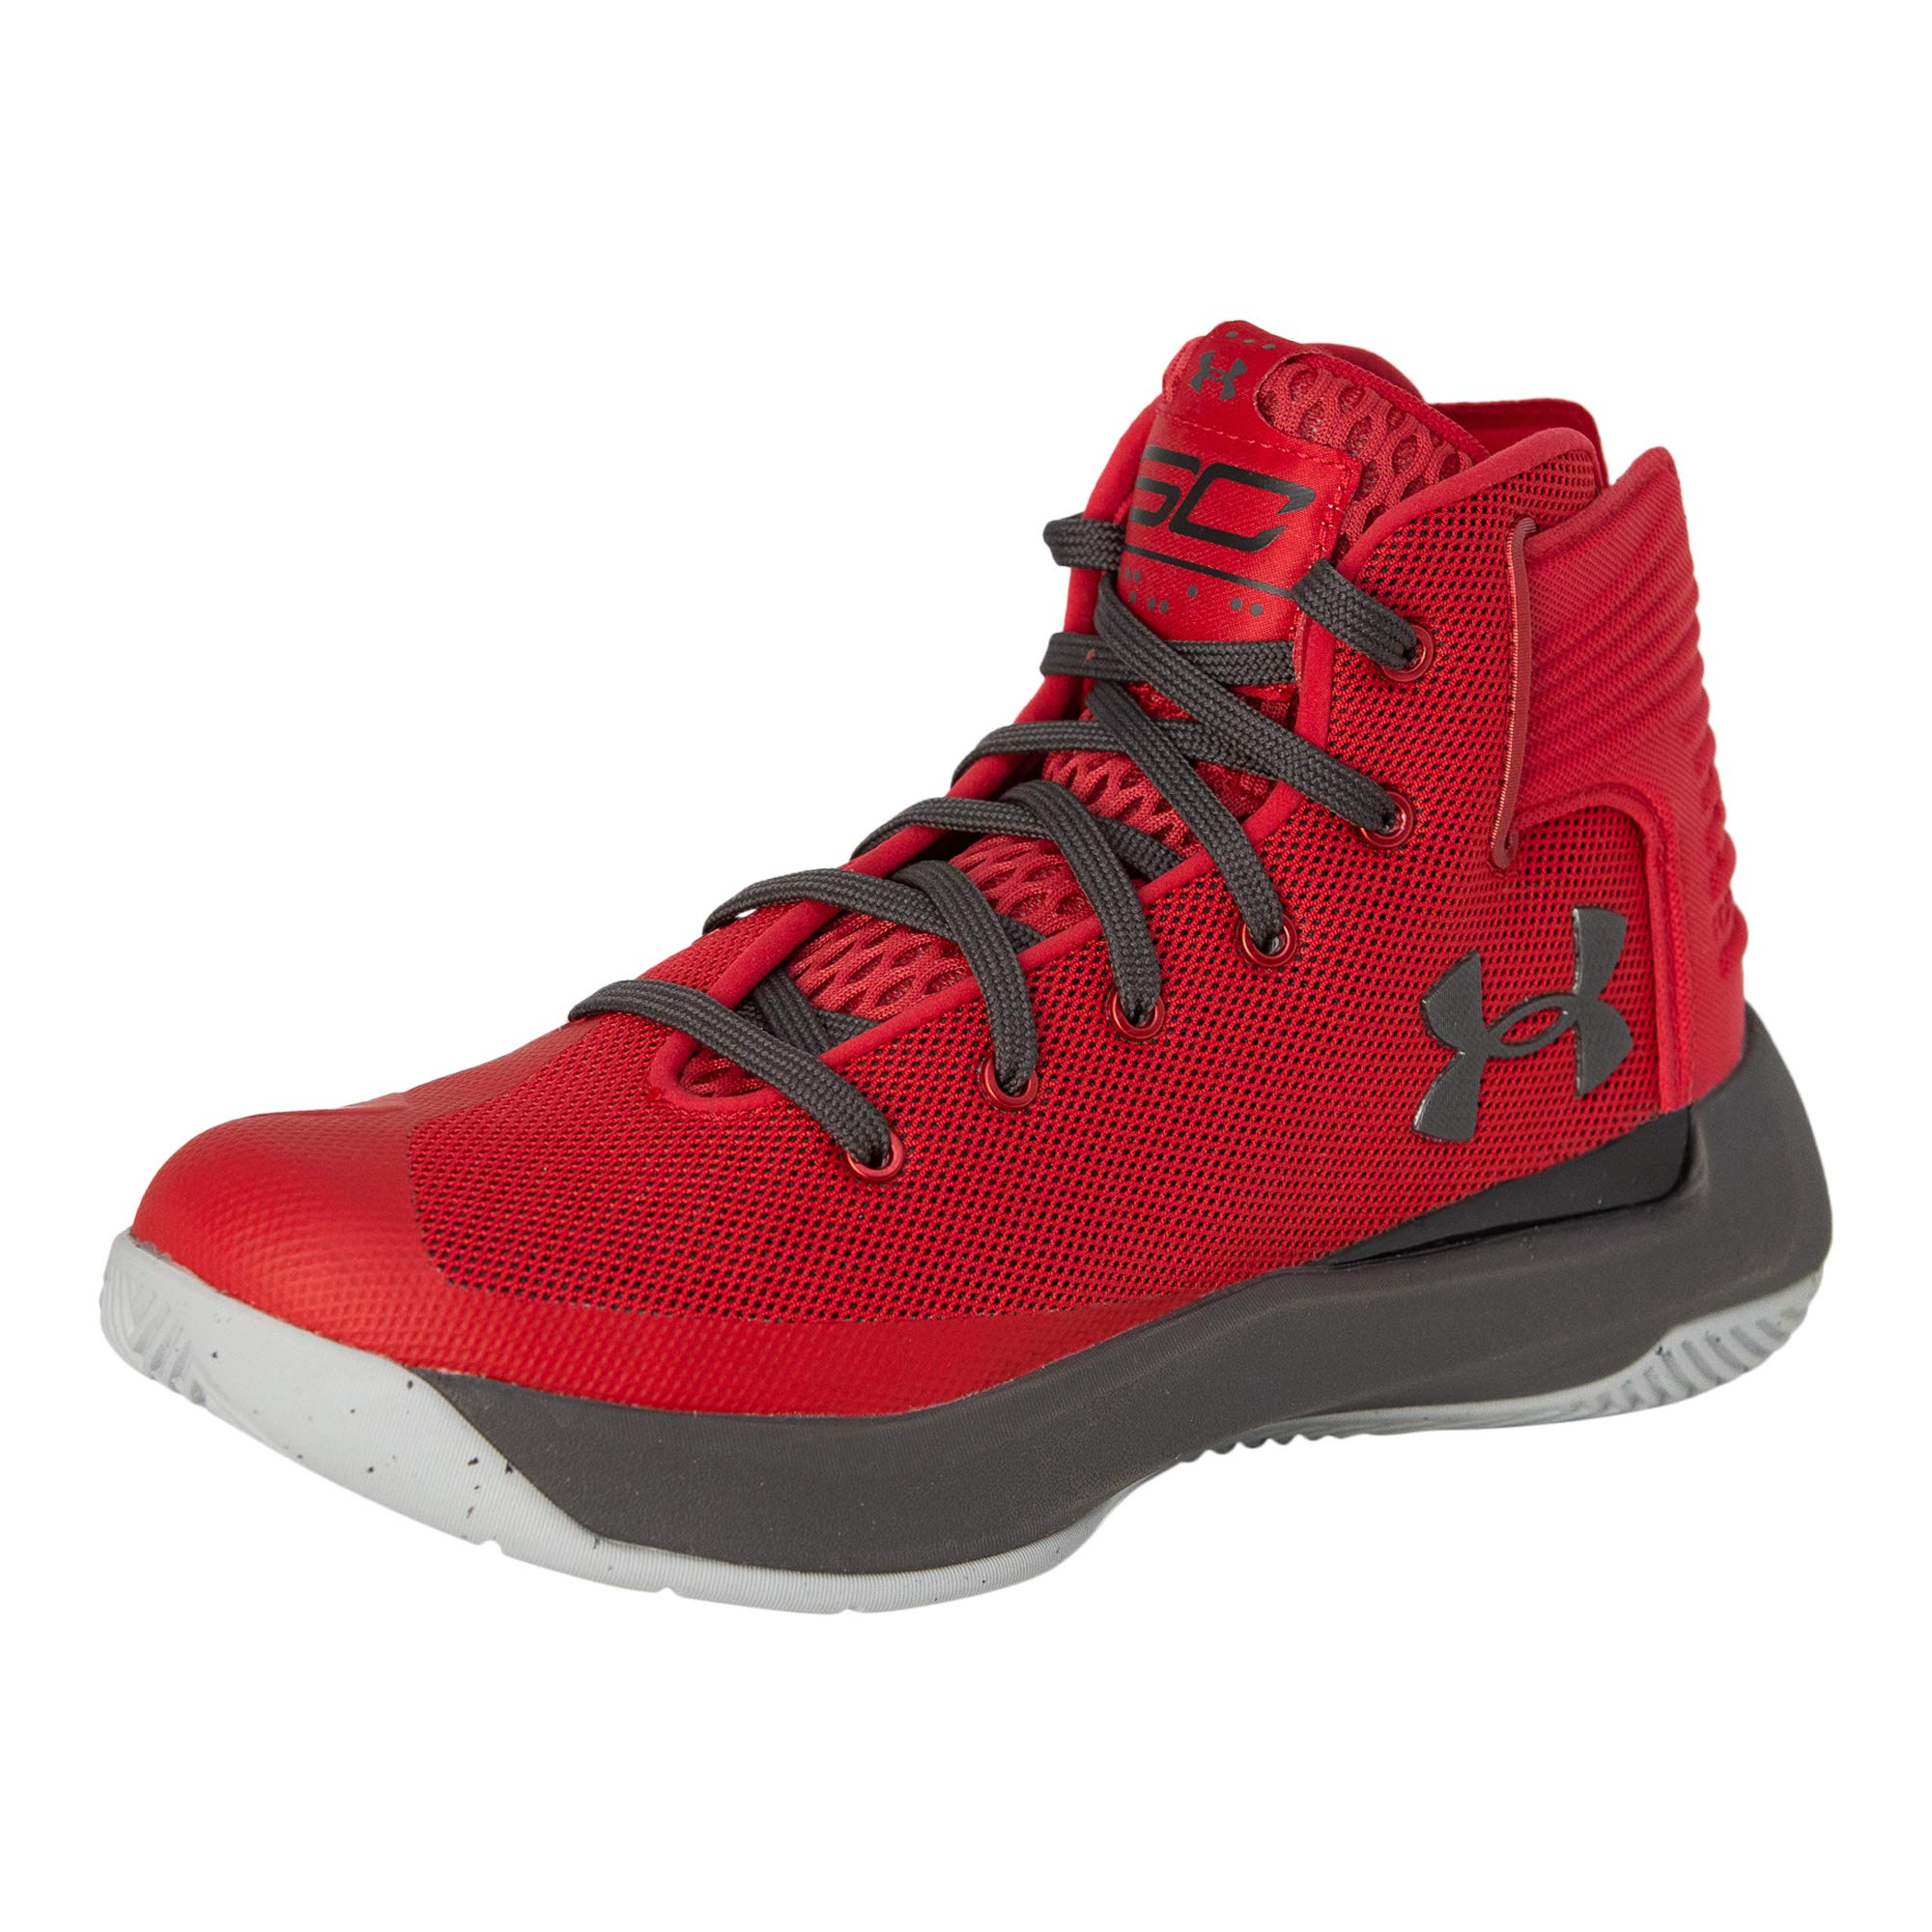 Under Armour Kids Boy's UA GS Curry 3ZERO Basketball (Red/Steel/Black, 4.5 M US Big Kid)